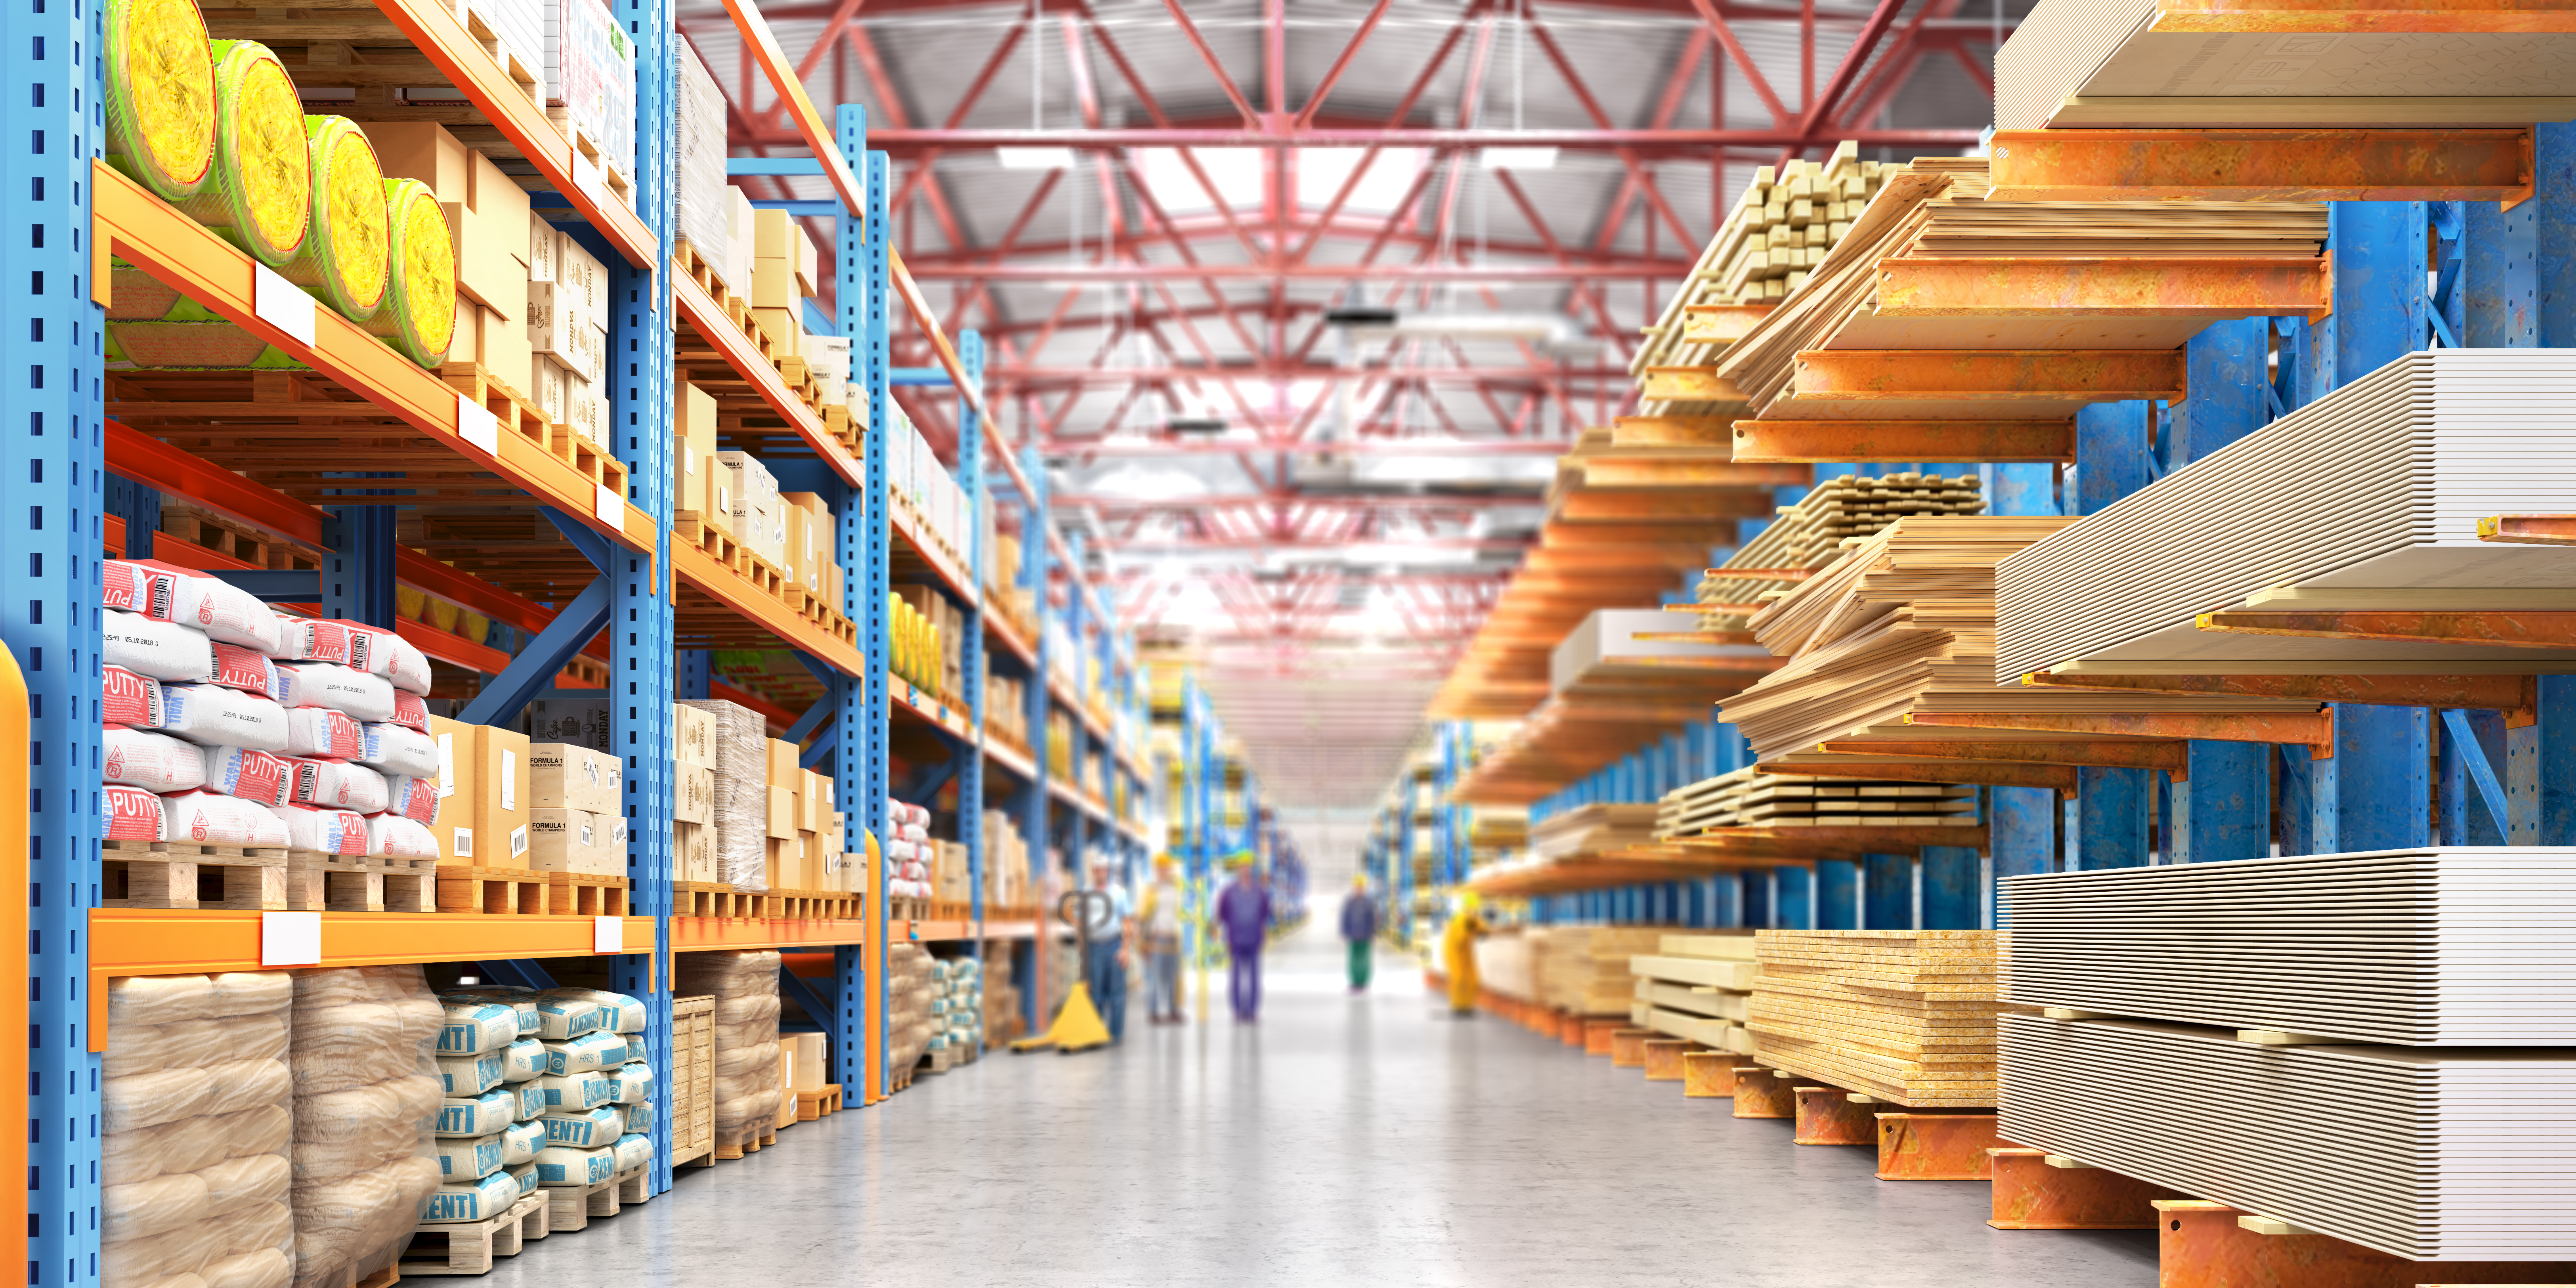 5 Important Reasons Lumber Dealers Should Consider Outsourcing Delivery